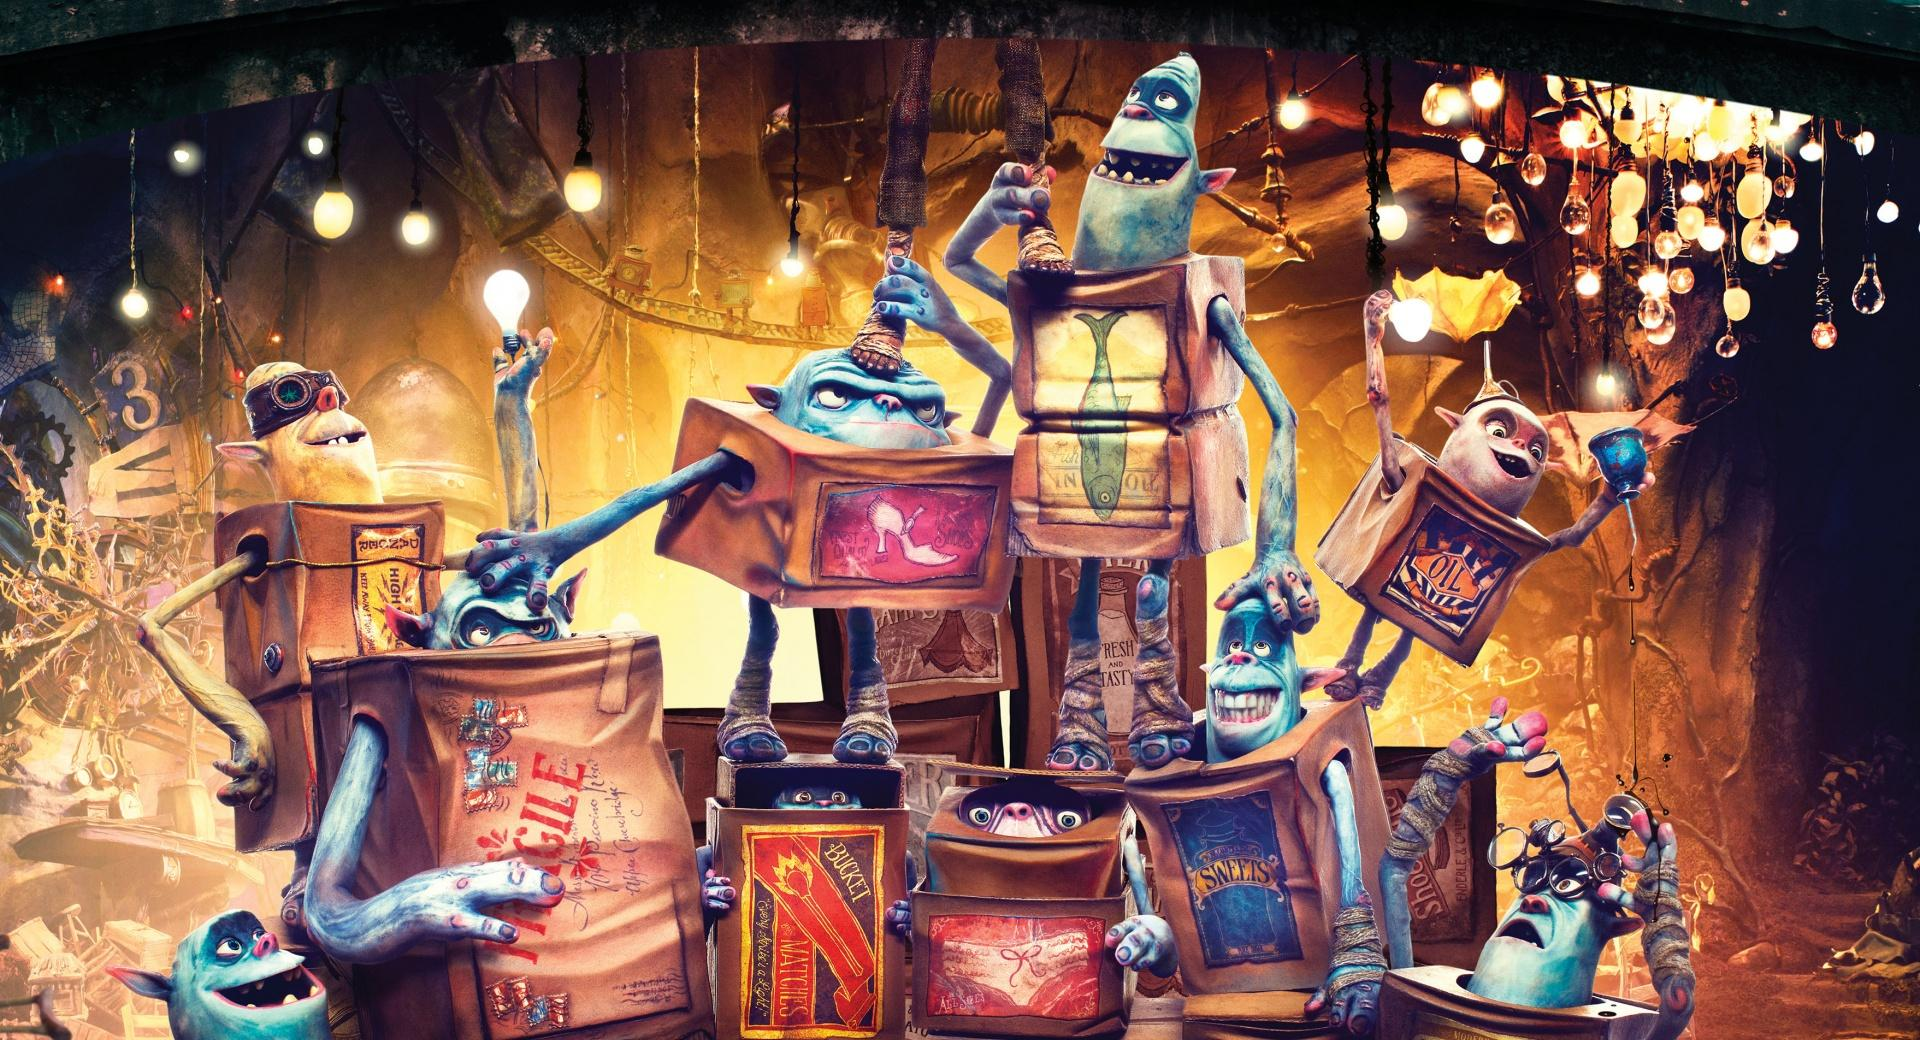 The Boxtrolls Characters 2014 Movie wallpapers HD quality